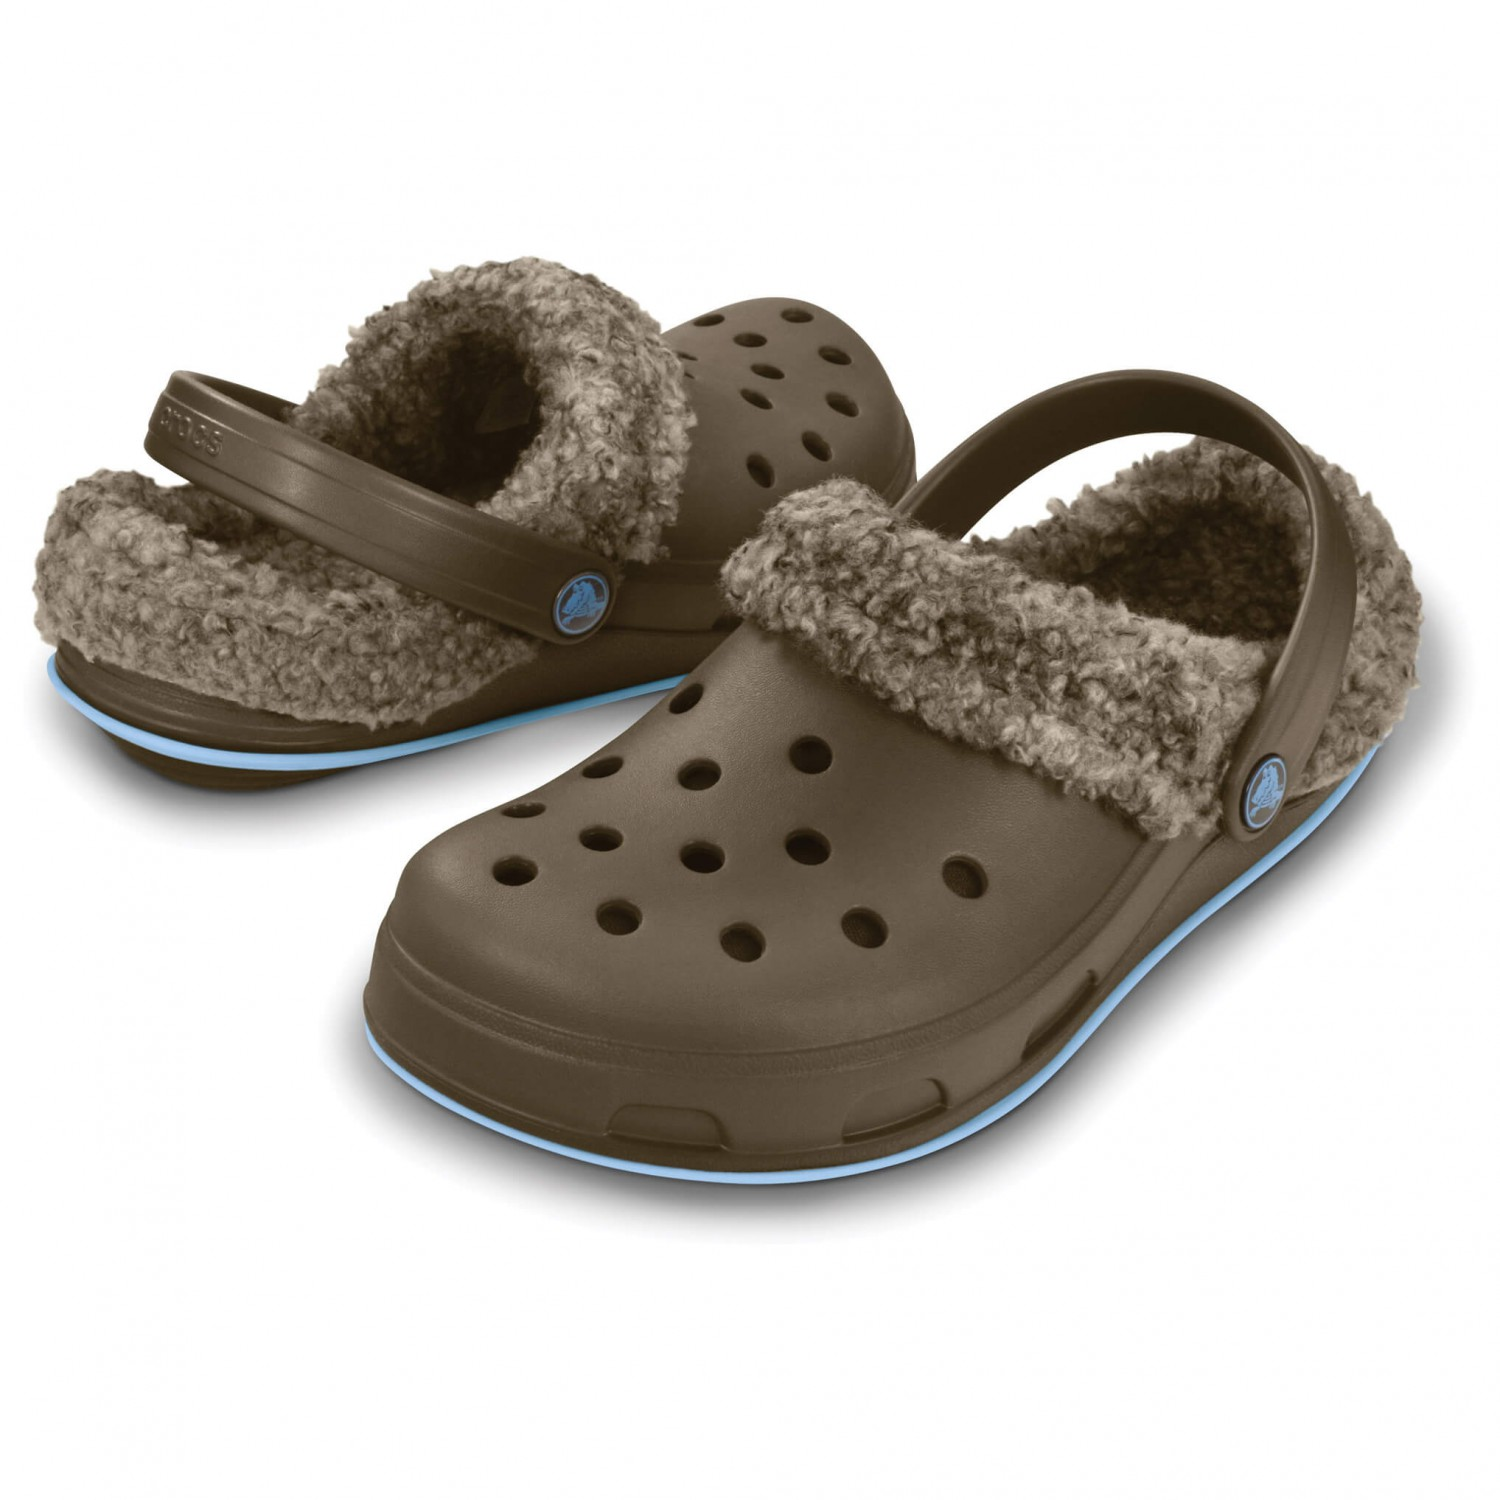 crocs classic lined clog unisex erwachsene clogs rot pepper silver 41 42 eu. Black Bedroom Furniture Sets. Home Design Ideas